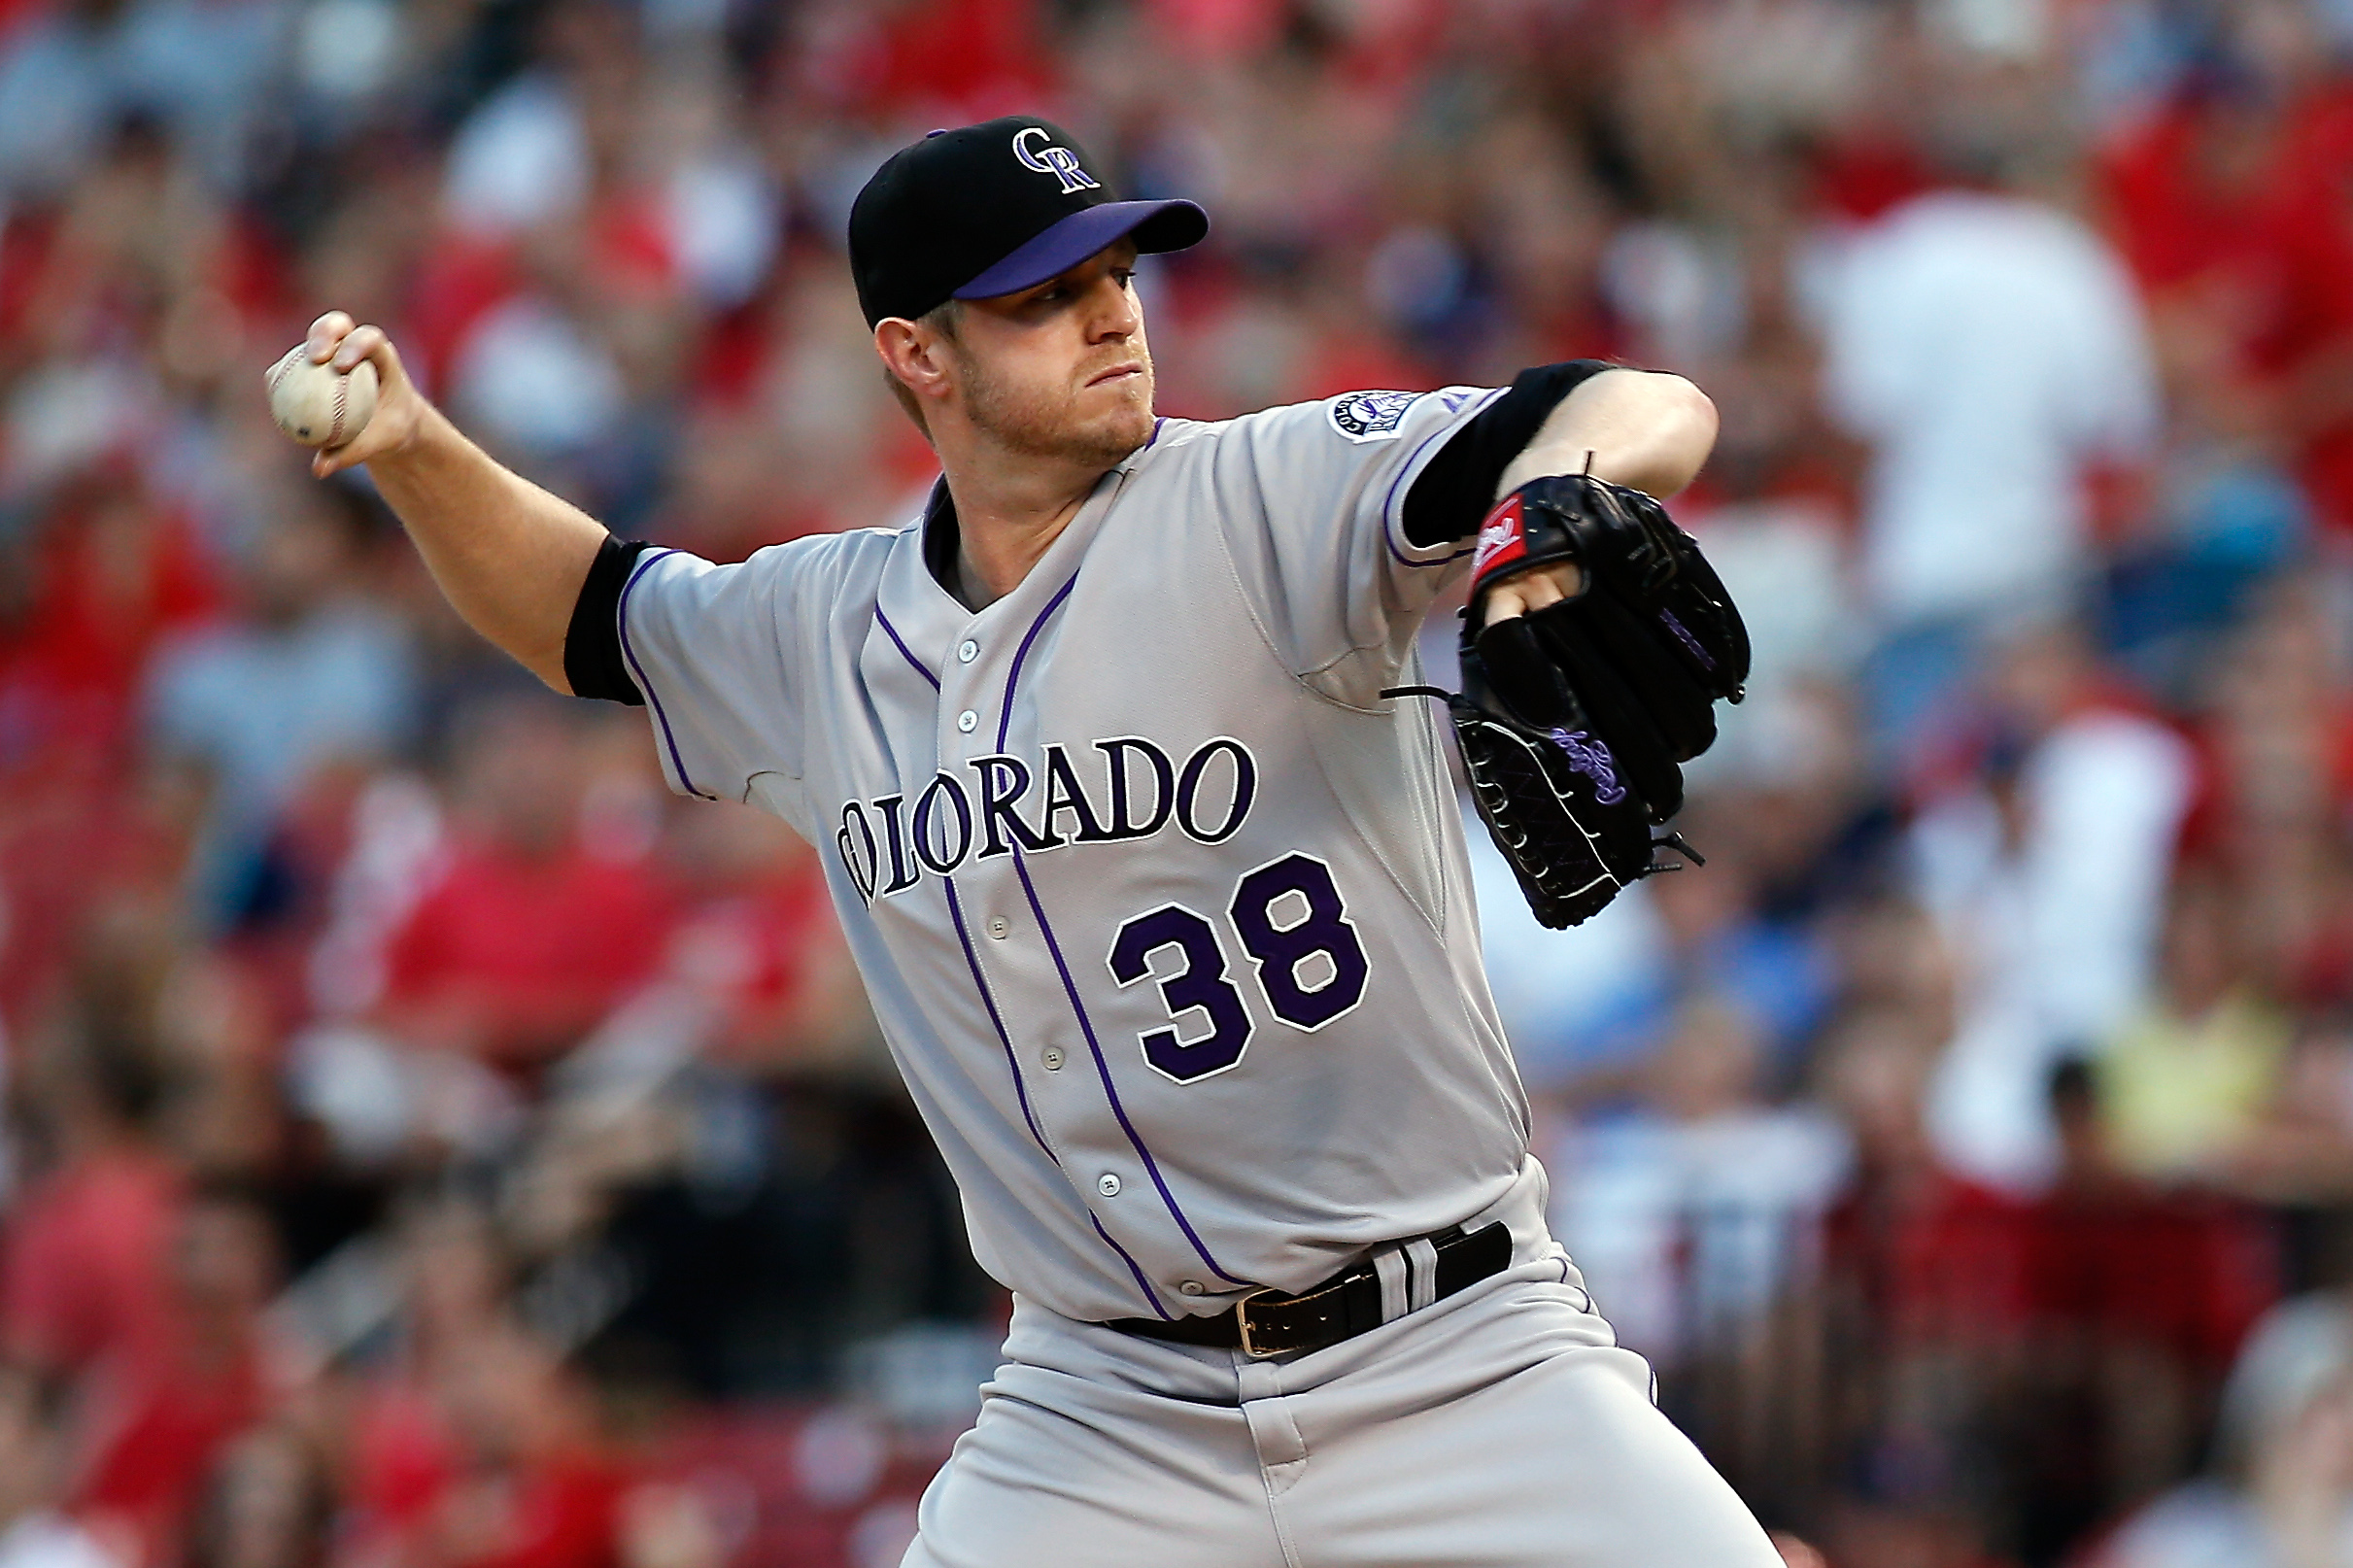 Colorado Rockies starting pitcher Kyle Kendrick throws during the first inning of a baseball game against the St. Louis Cardinals, Friday, July 31, 2015, in St. Louis. (AP Photo/Scott Kane)